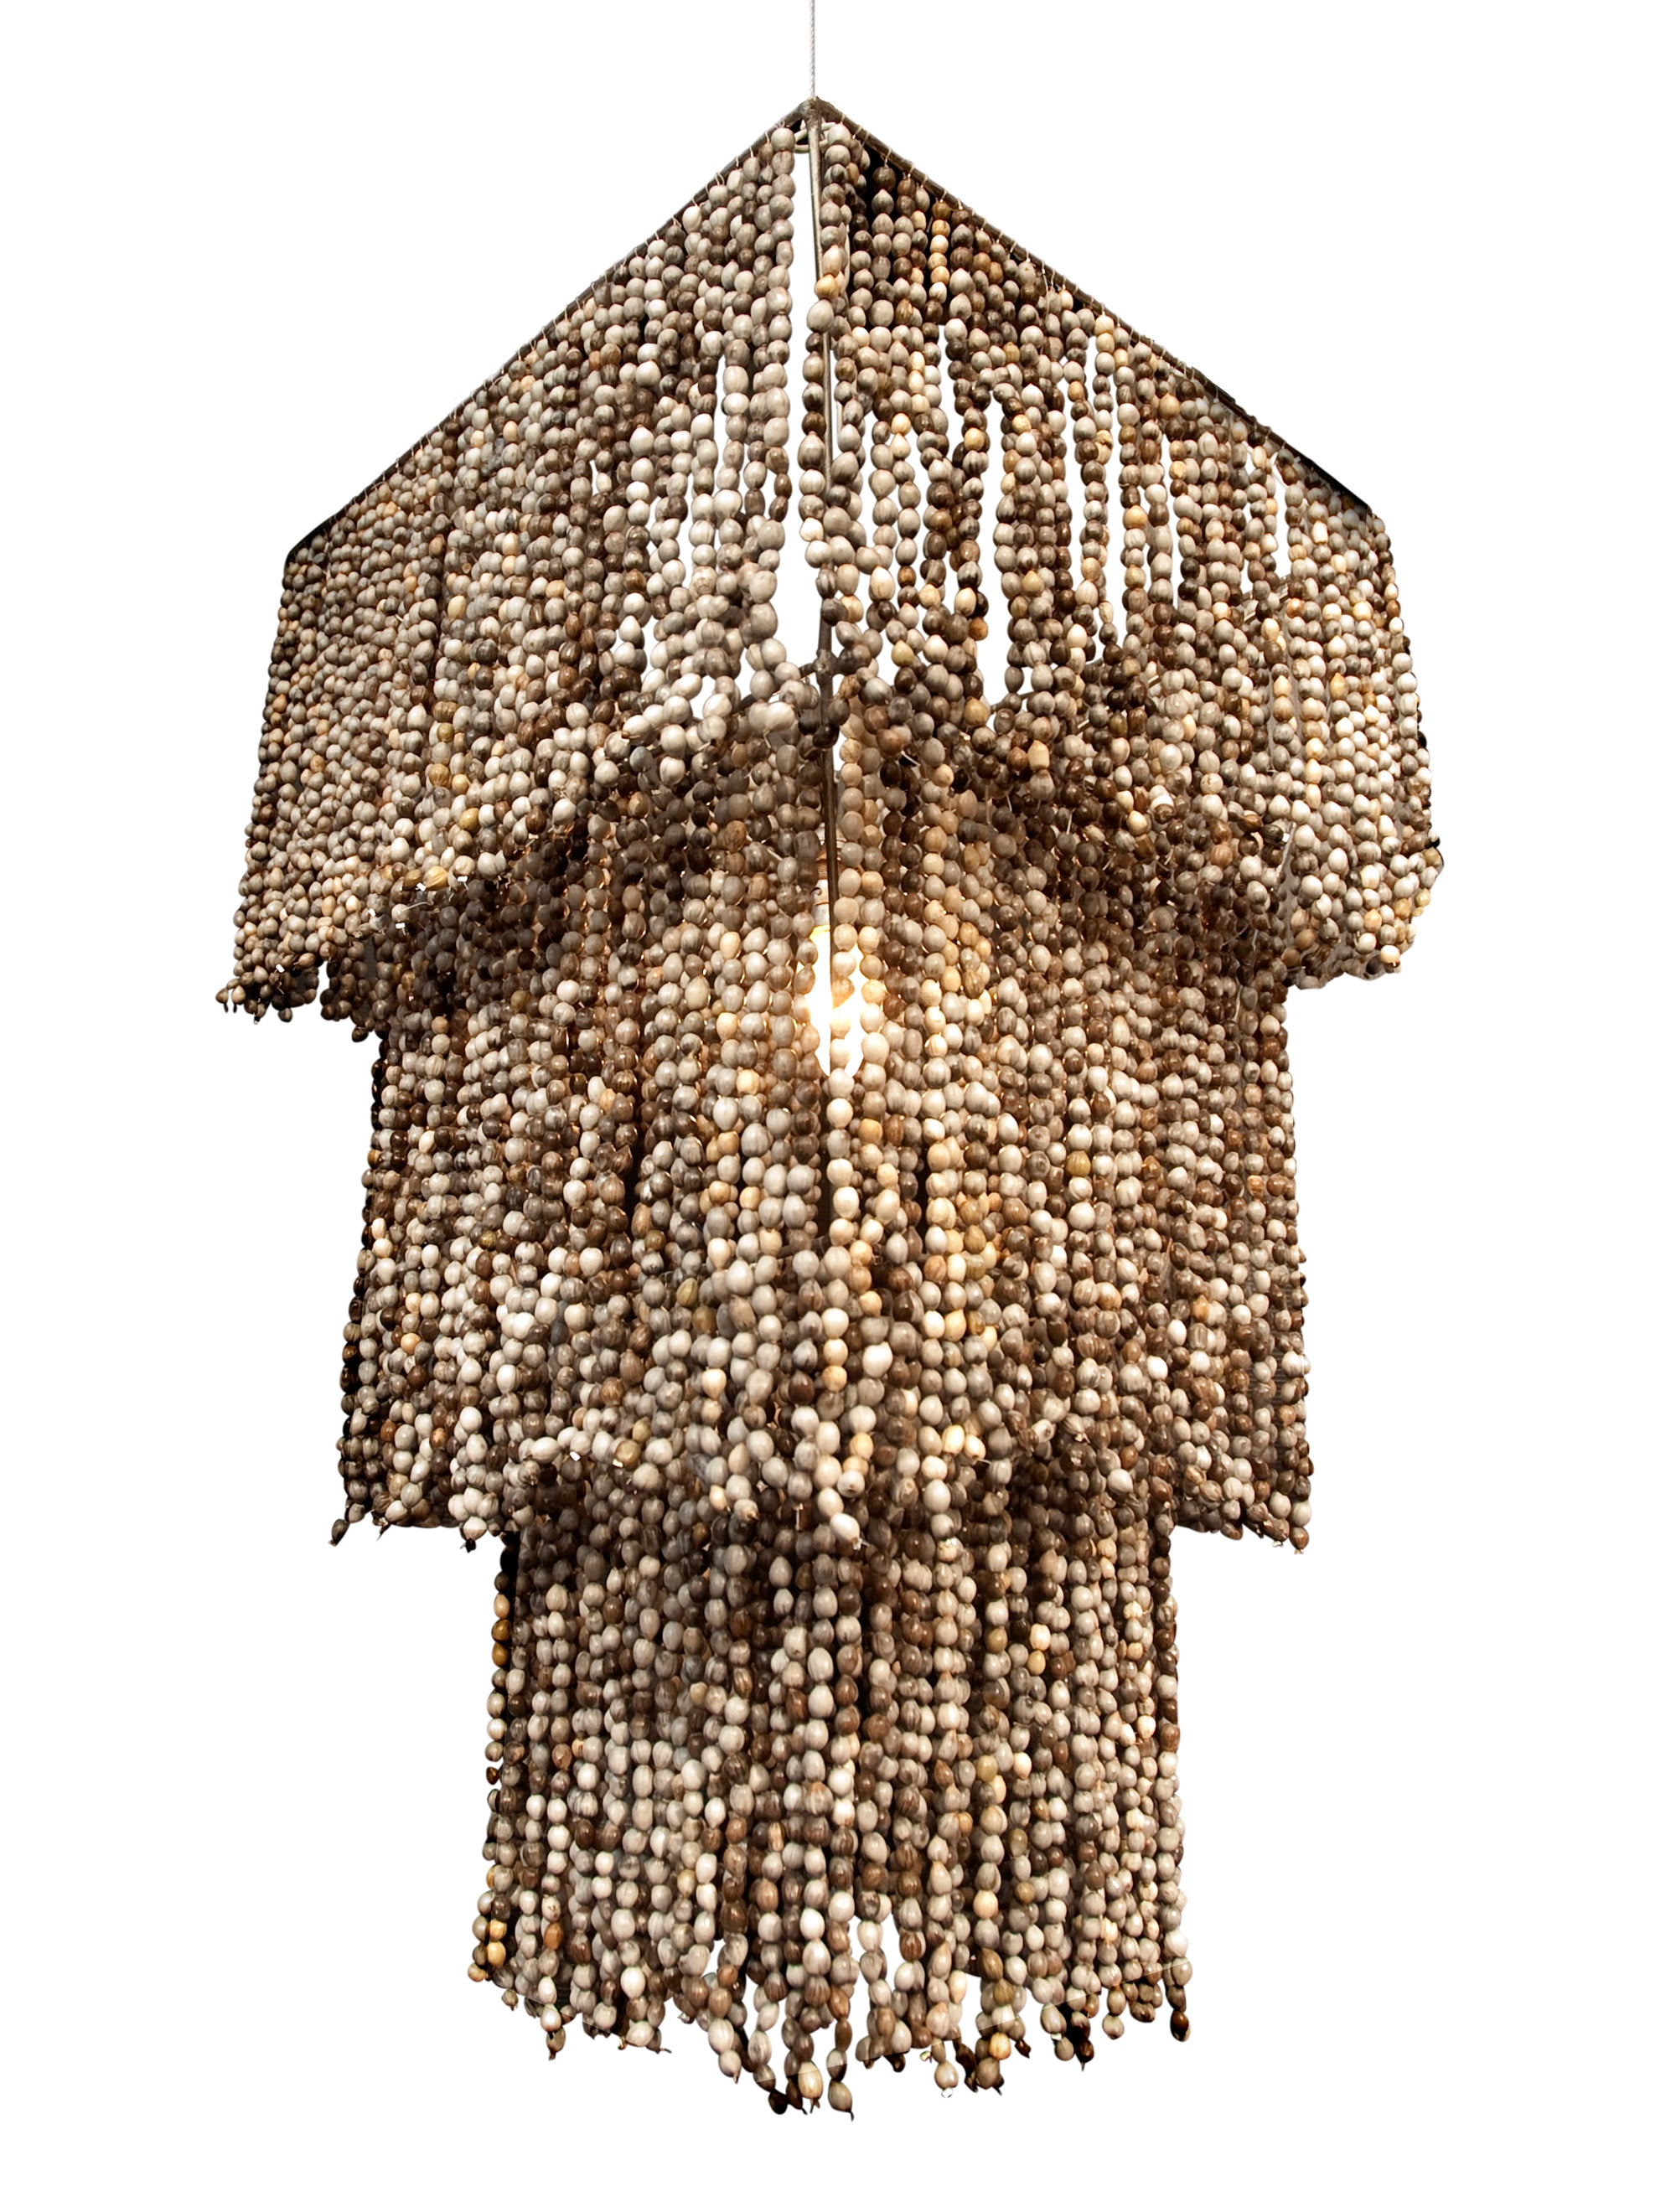 3 tier square zulu seeds chandelier. tiered chandelier. tiered light